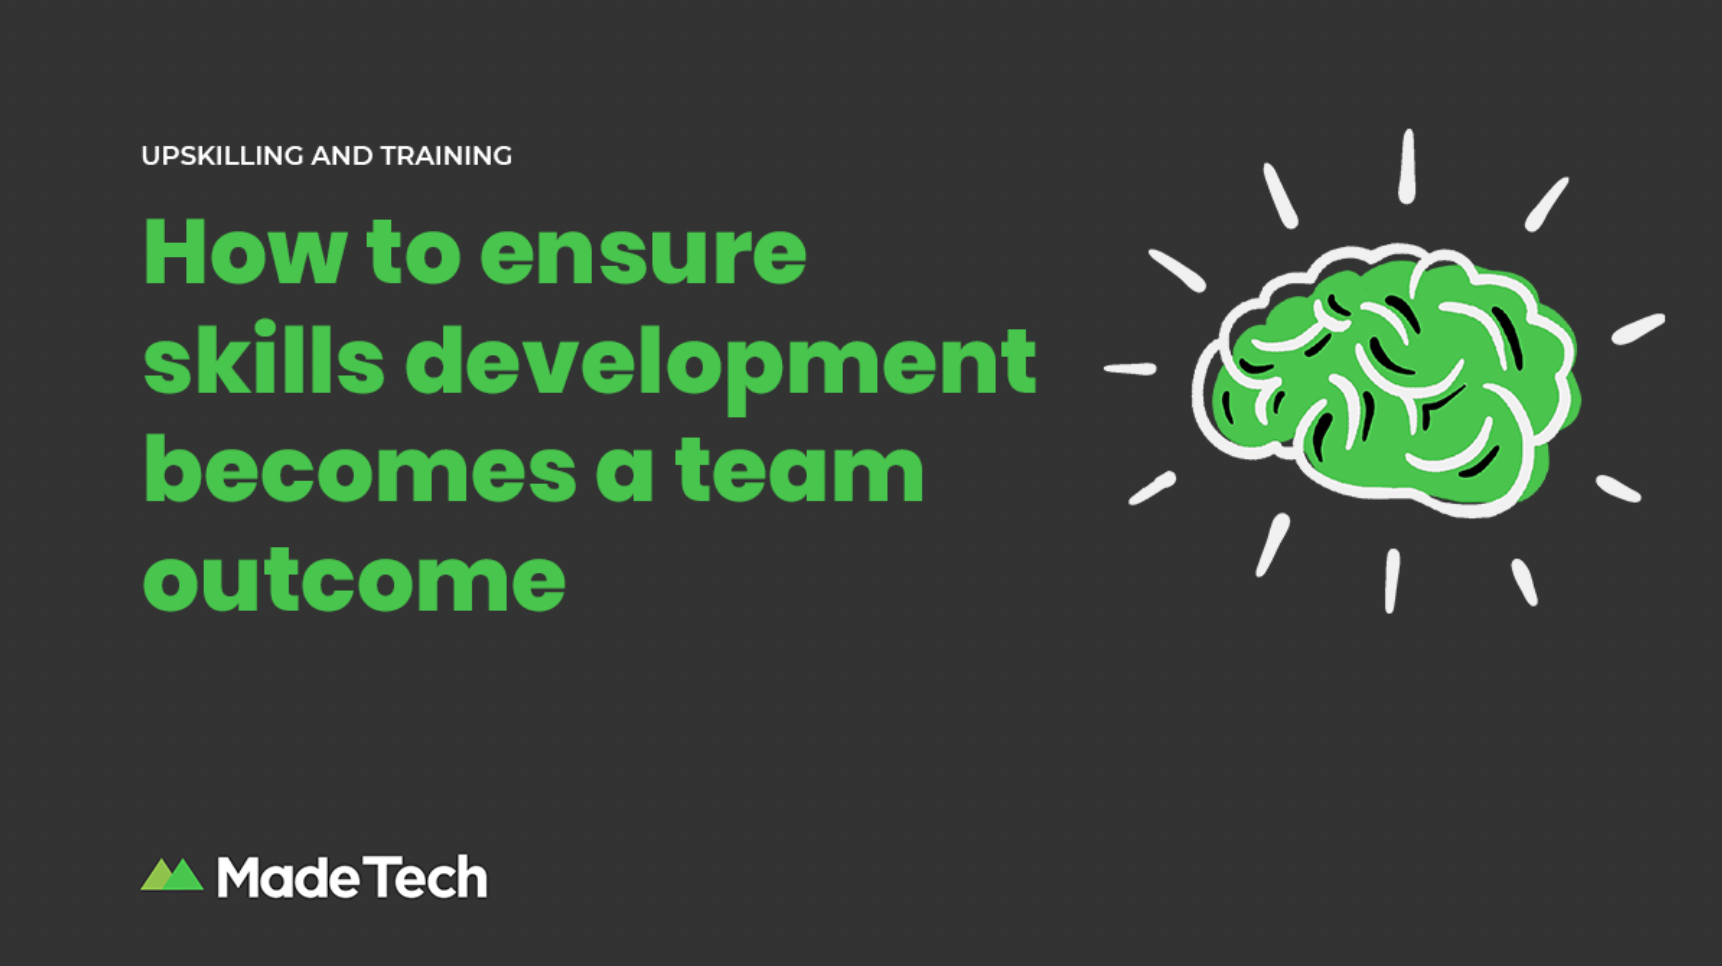 How to ensure skills development becomes a team outcome